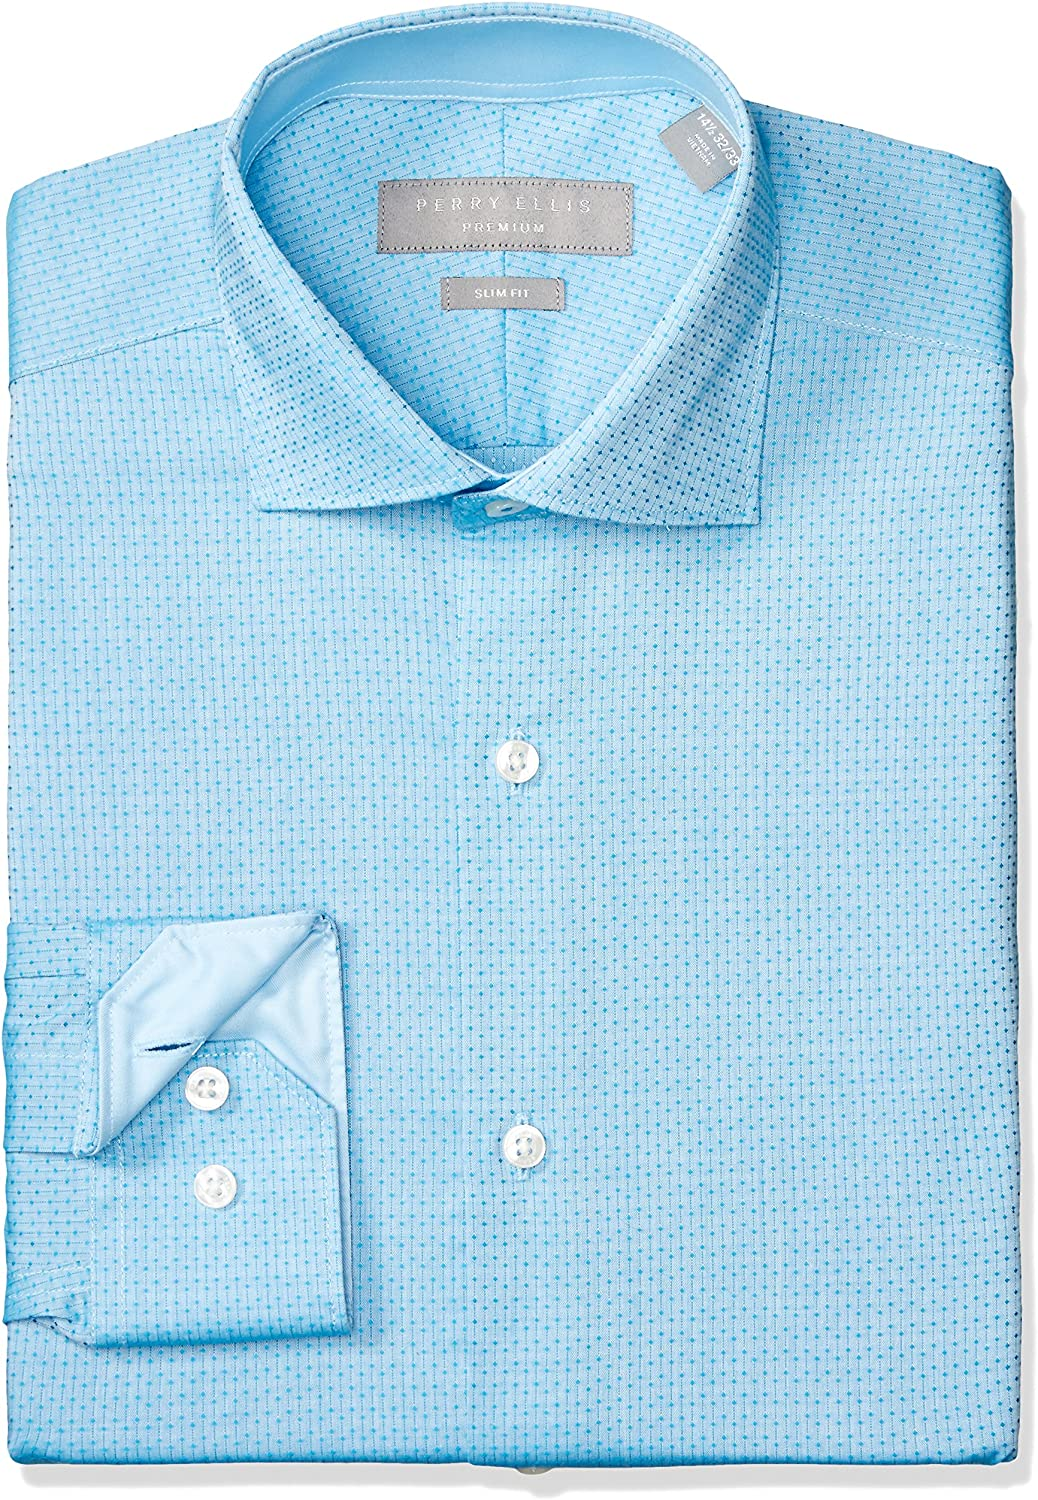 Perry Ellis Mens Slim Fit Non-Iron Cotton Dress Shirt